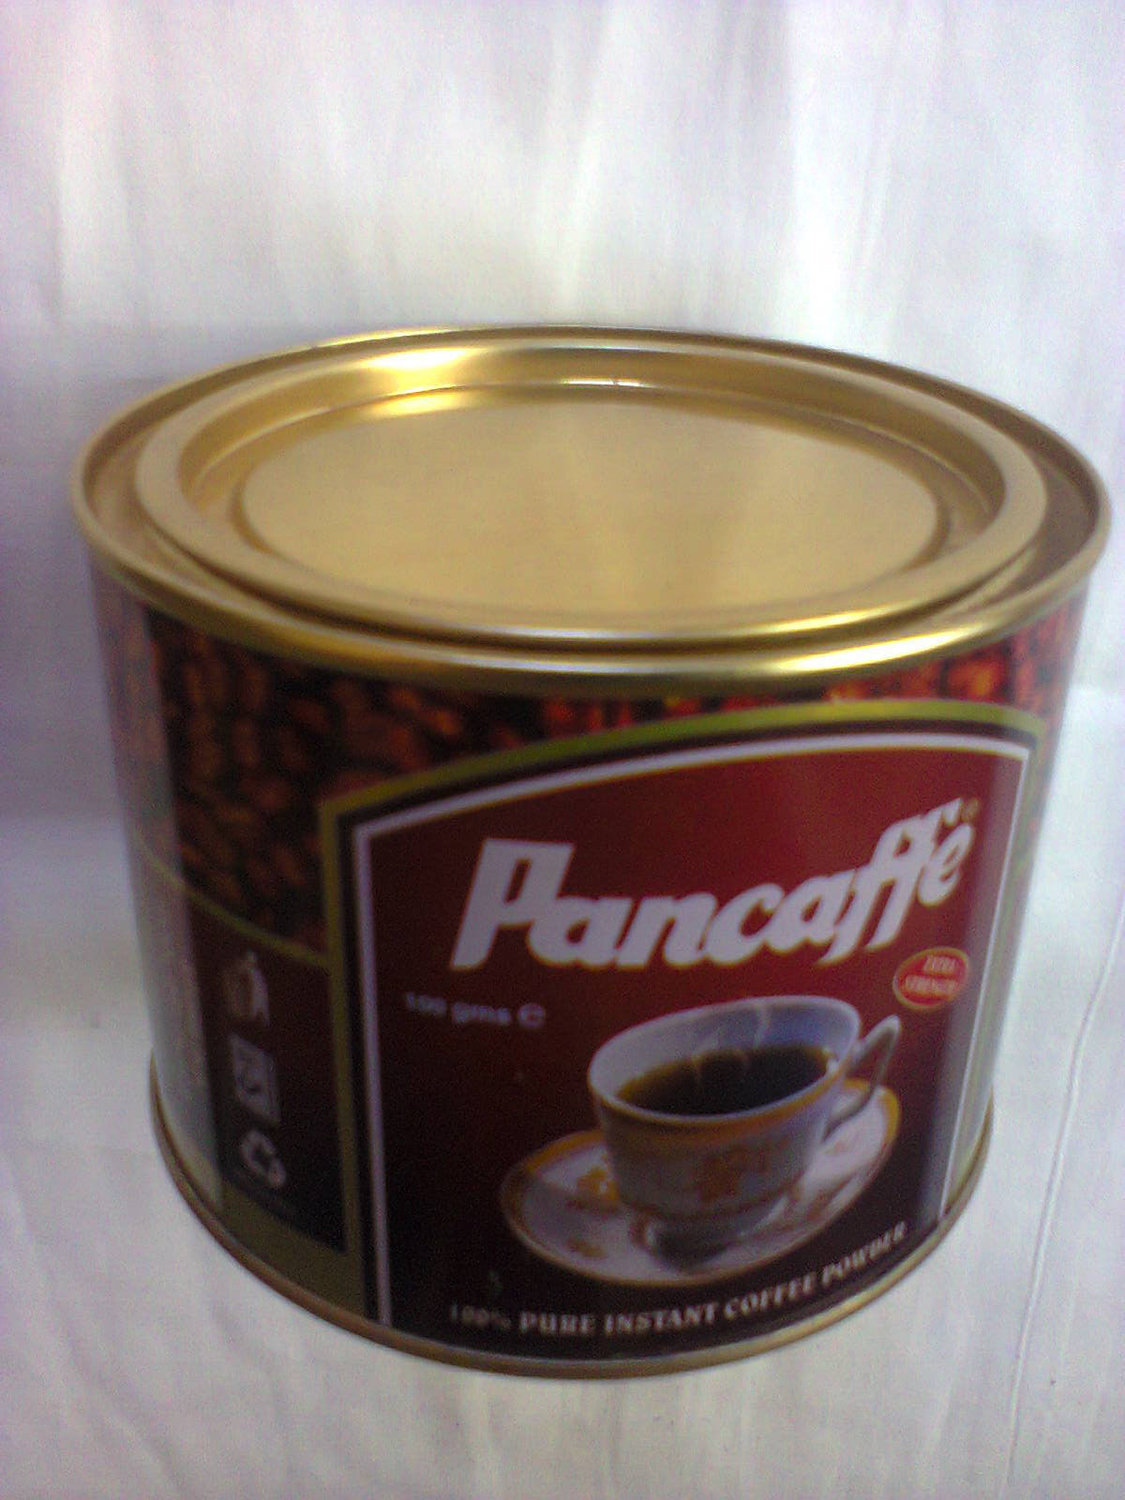 Pancaffe instant coffee from Kenya-100GMS